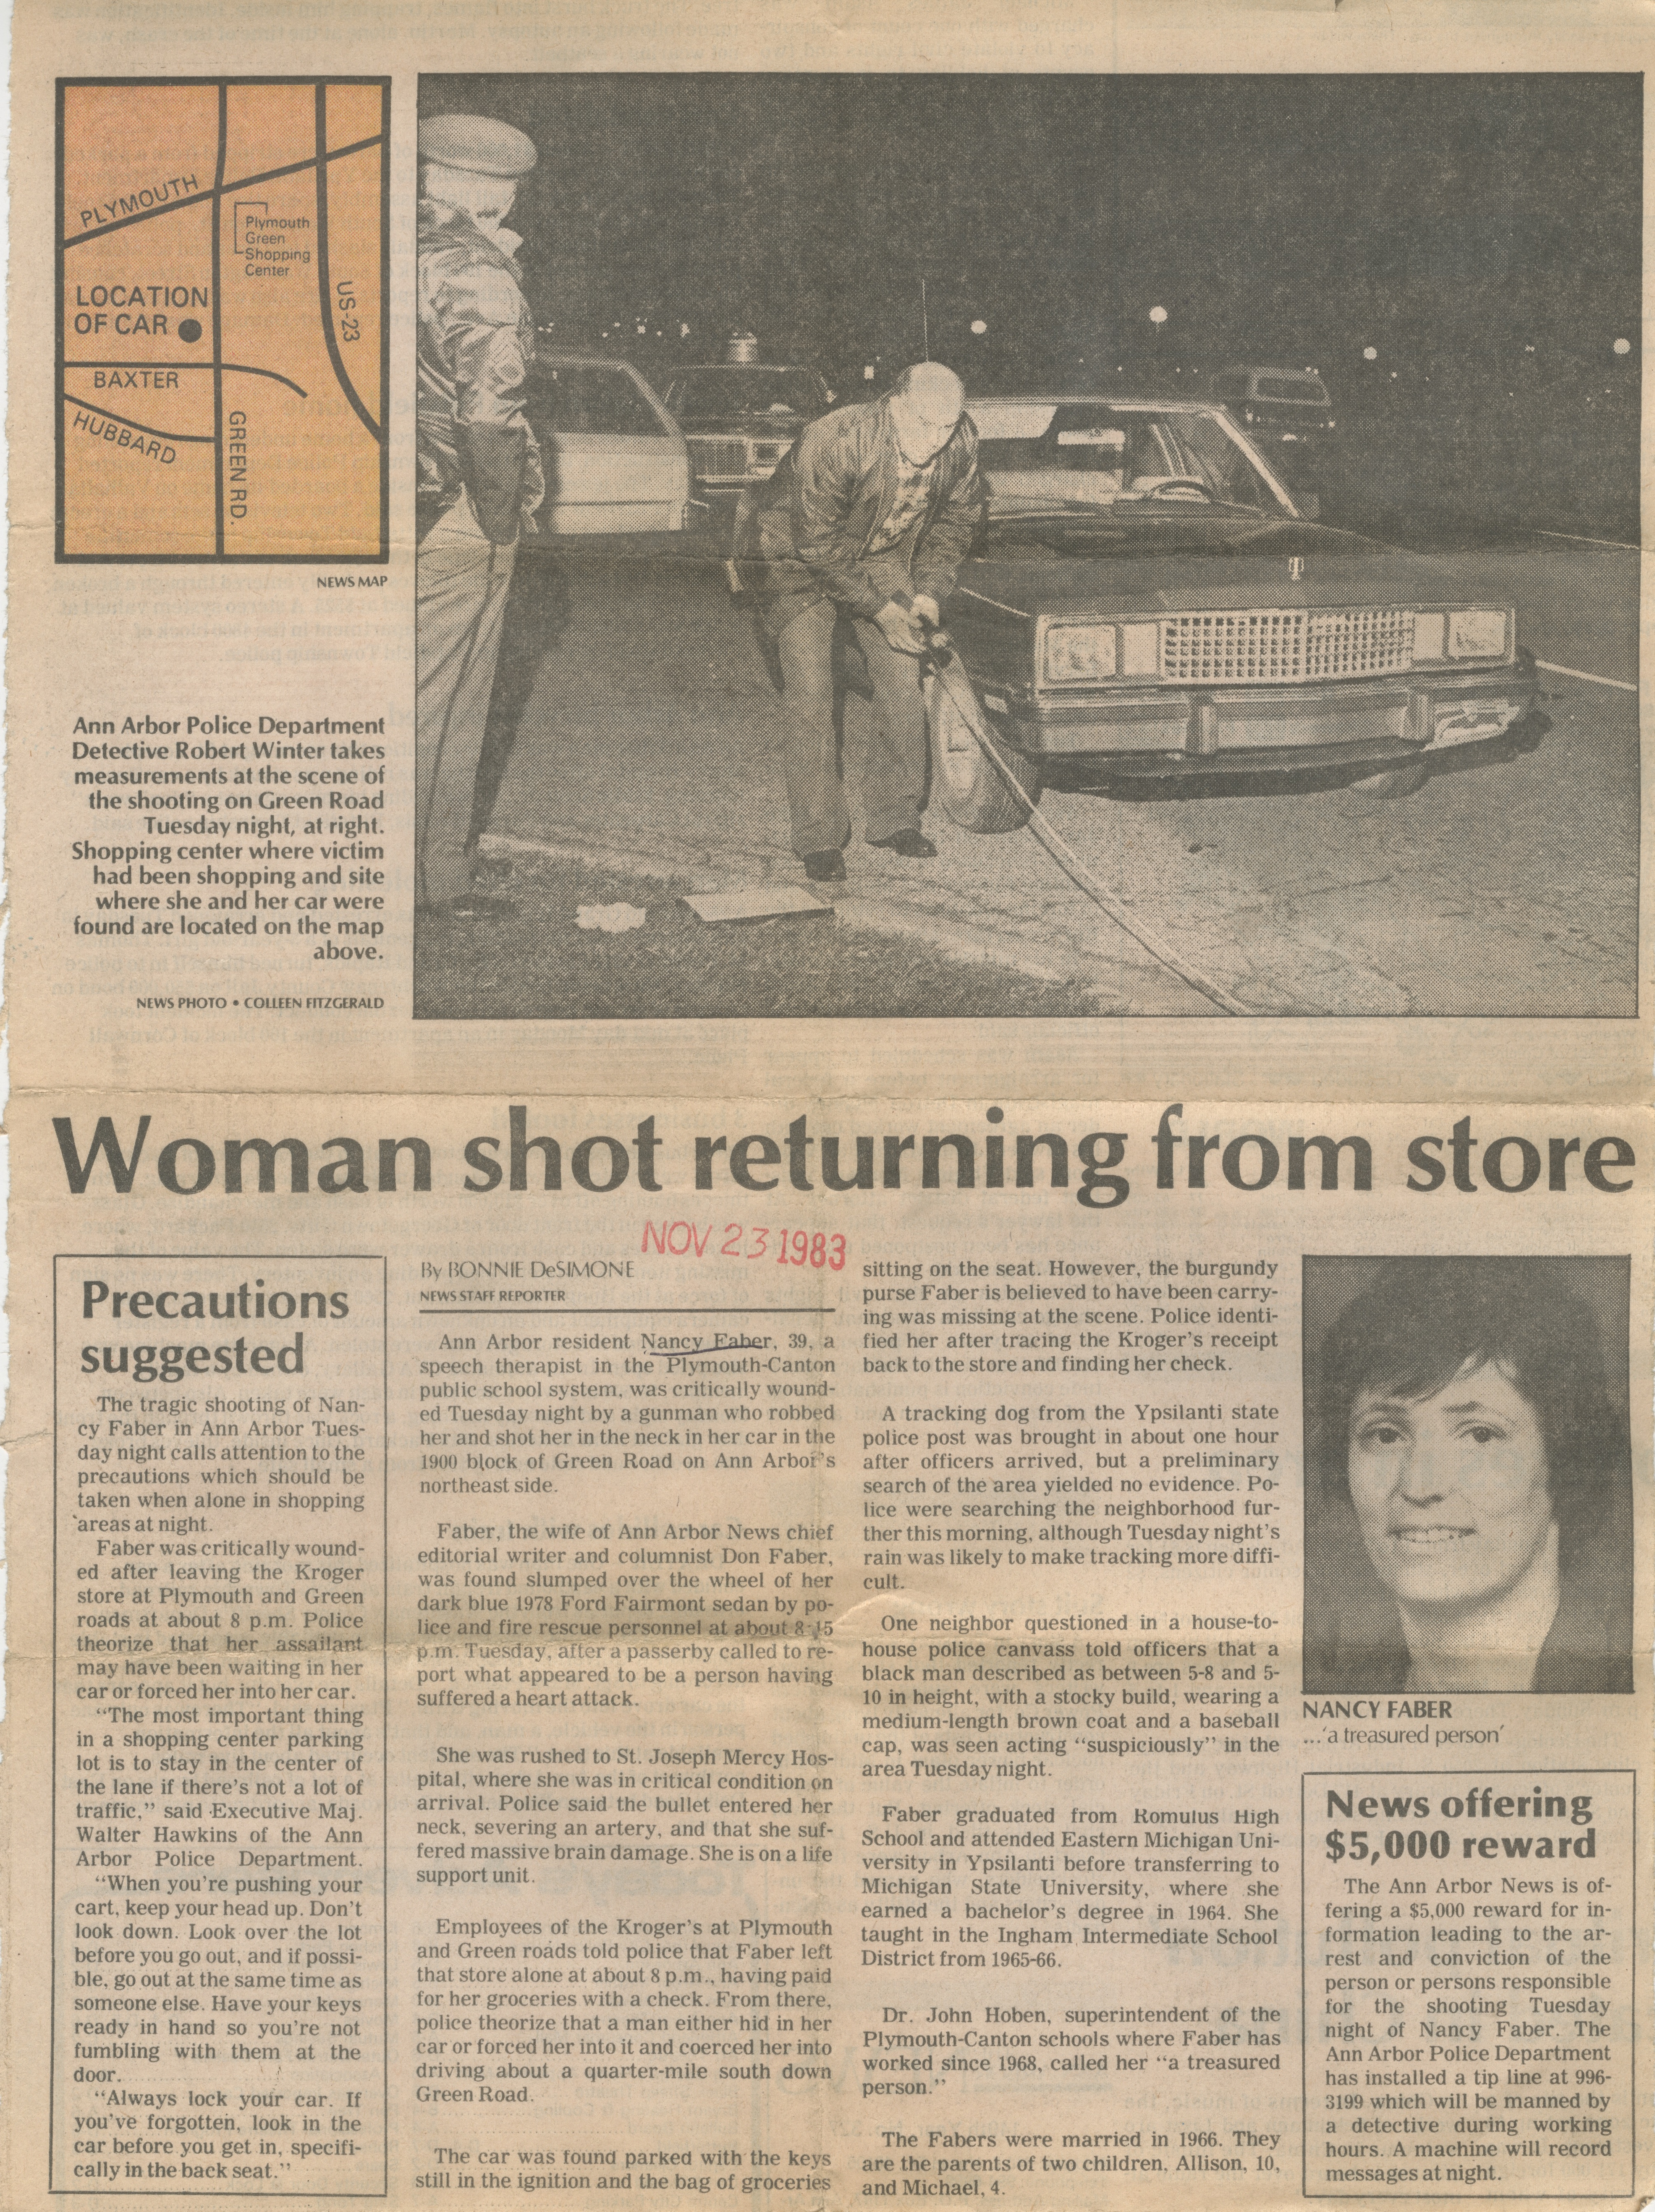 Woman Shot Returning From Store image